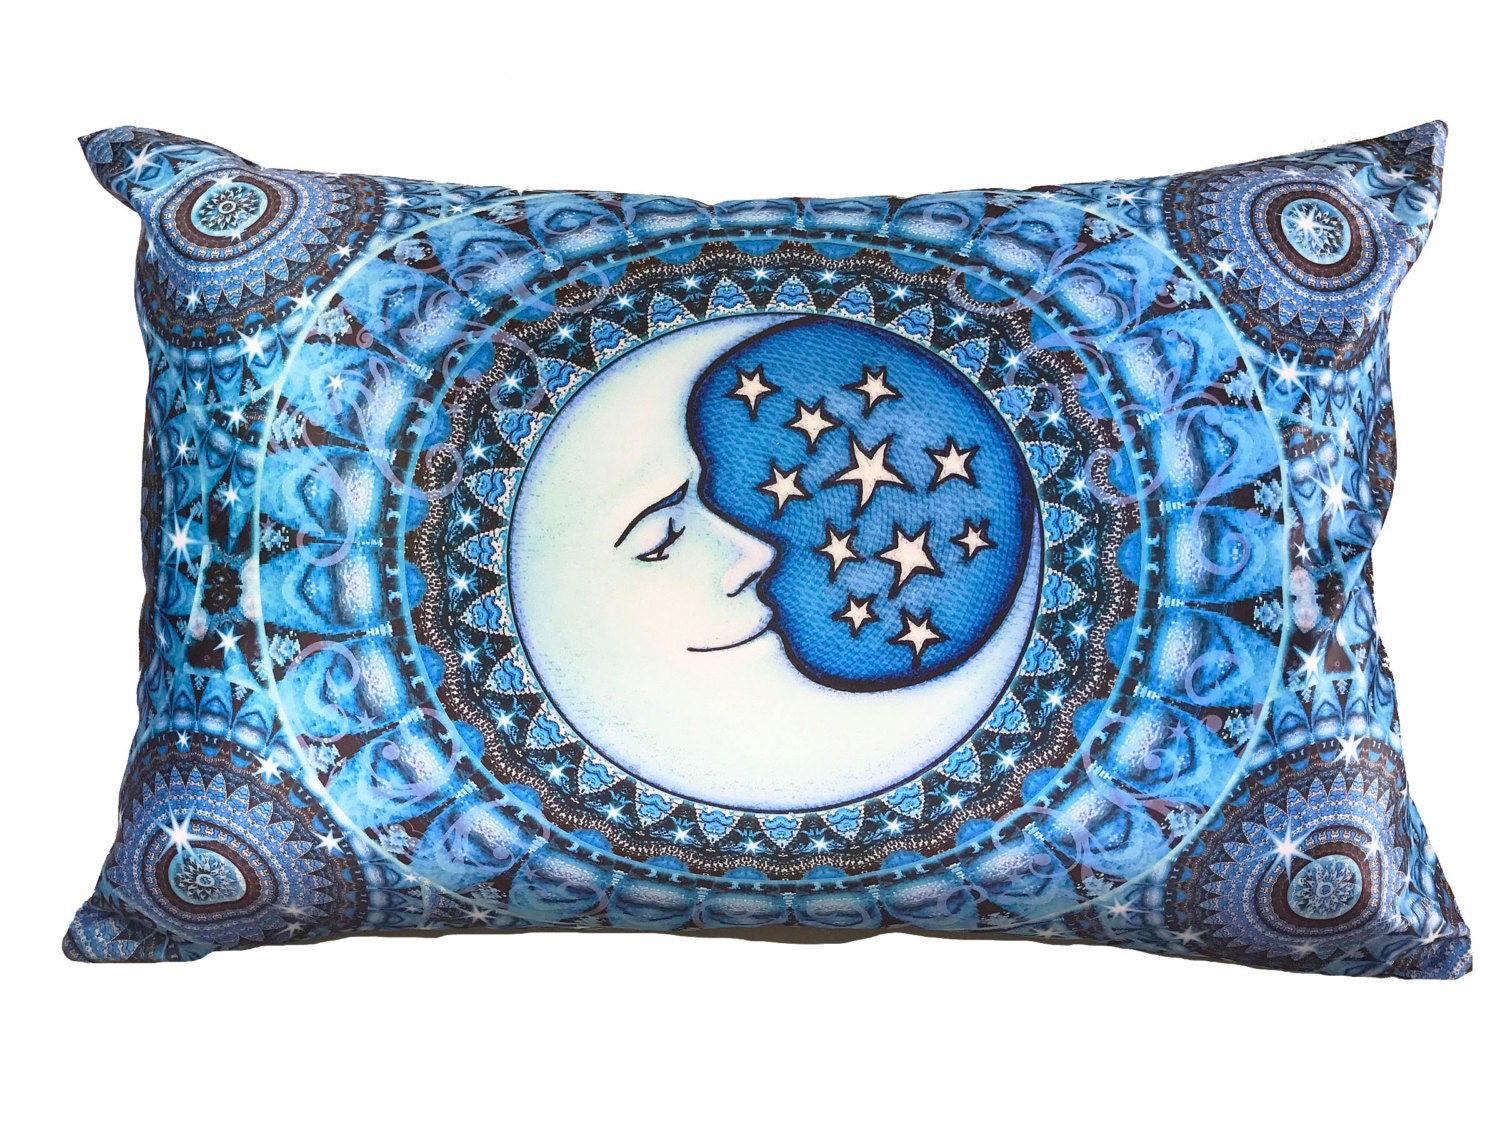 Bohemian Blue Moon Bed Pillow Case Cool Satin Fabric Fits